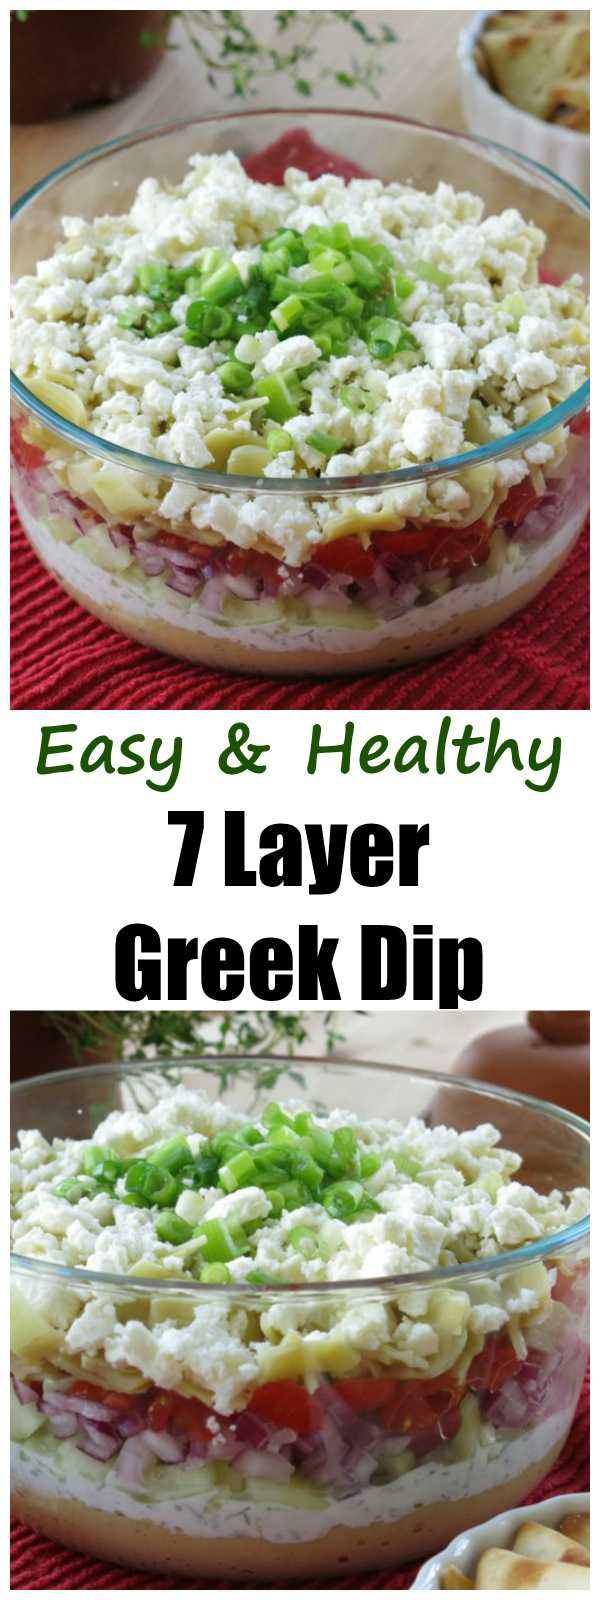 7 Layer Greek Dip Recipe. You're going to want to have this easy and healthy appetizer at your next party!